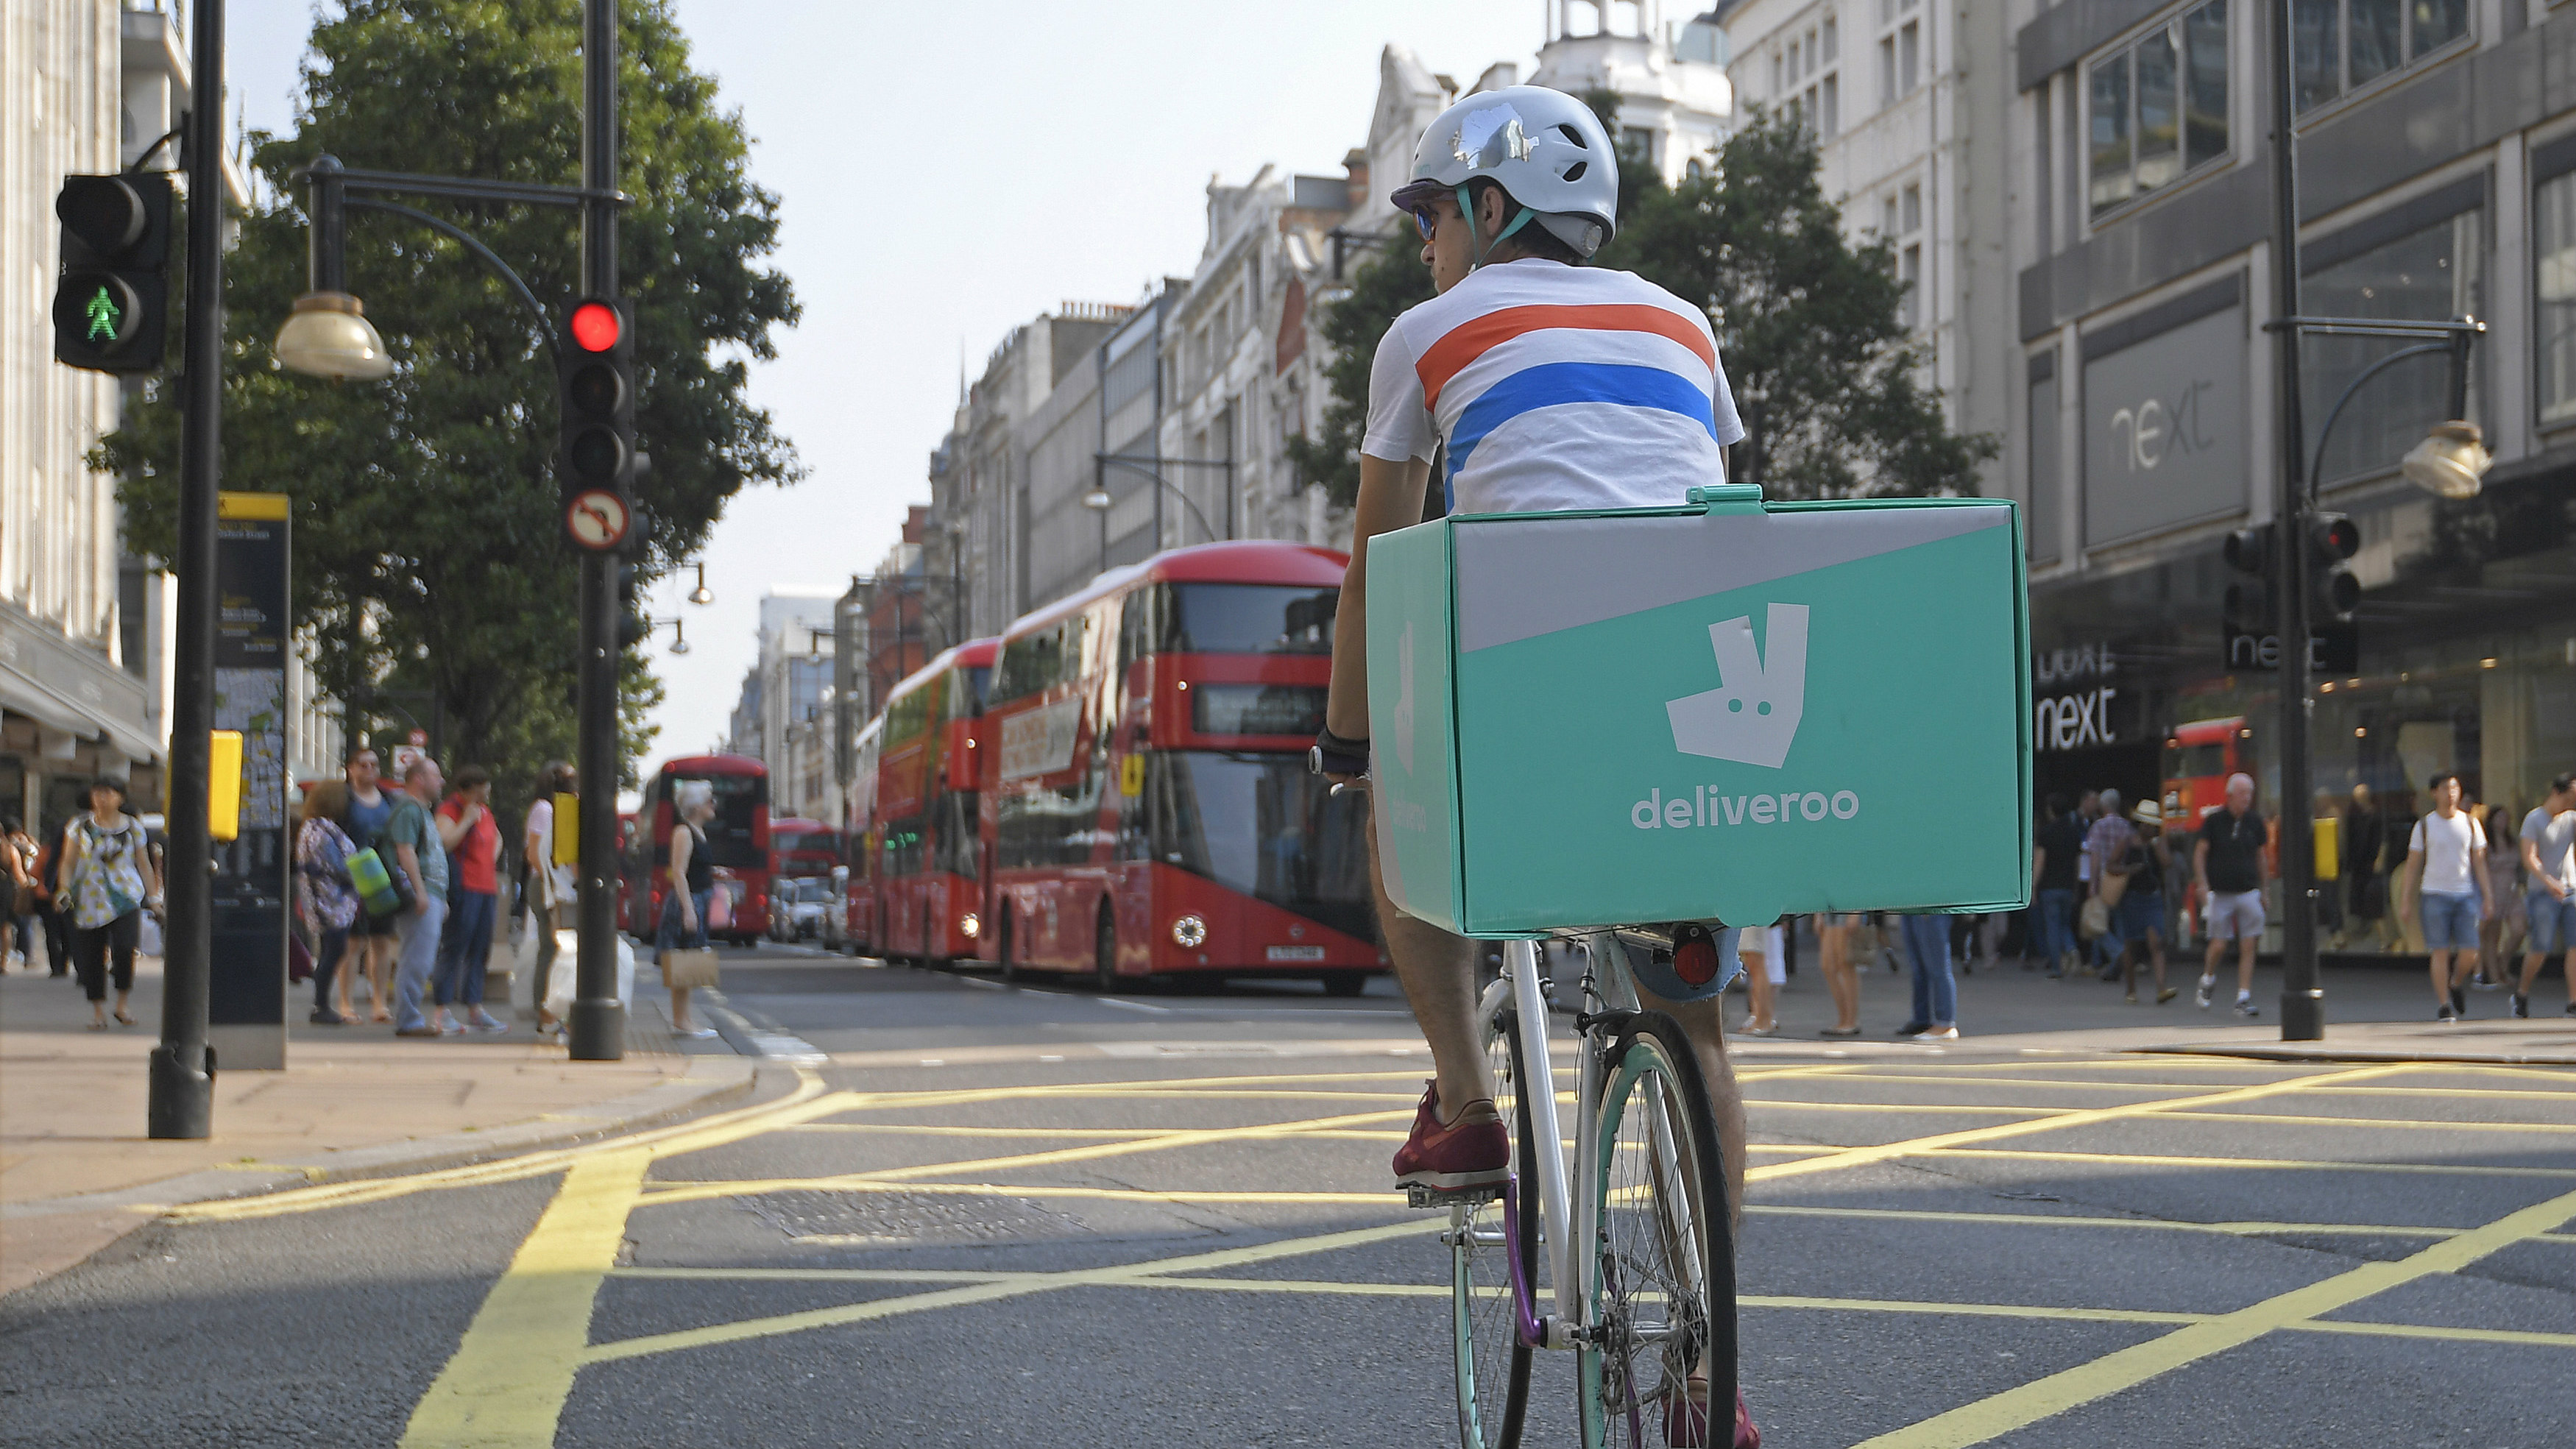 Deliveroo bike with rider in London, UK